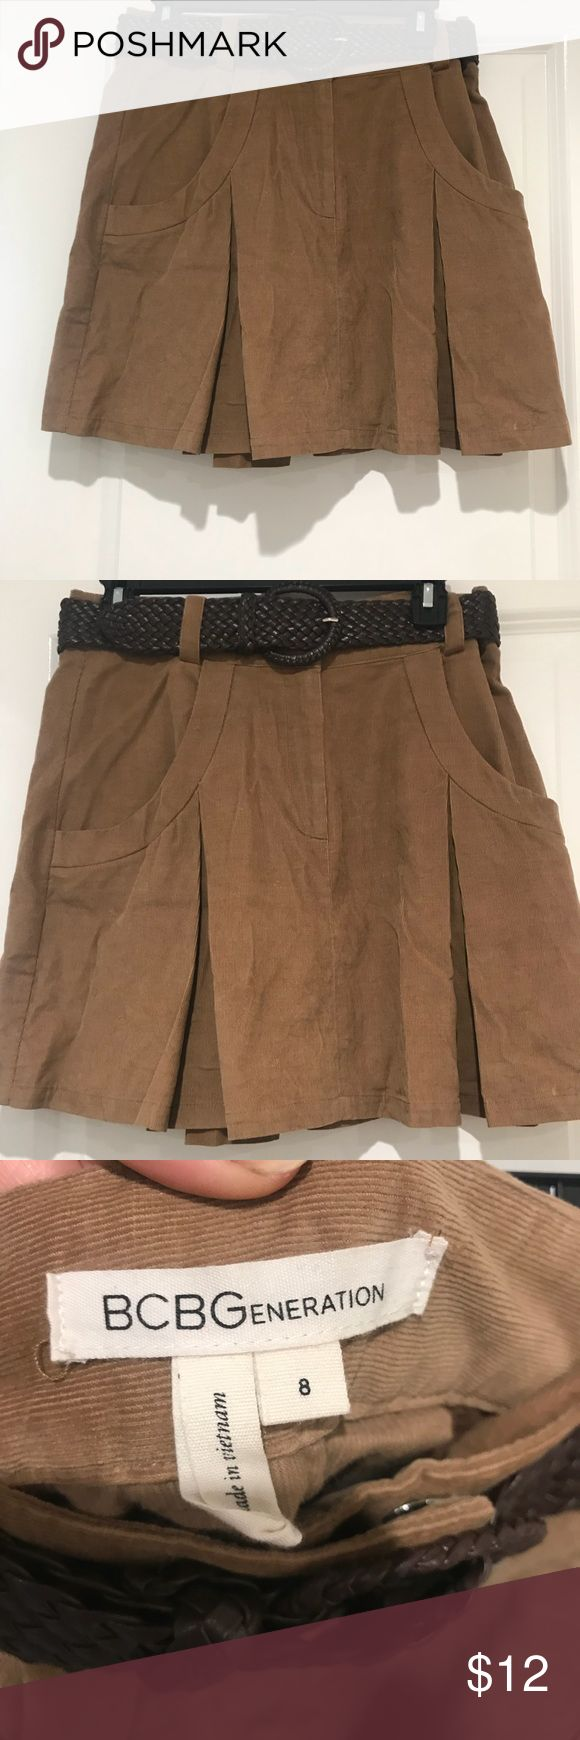 BCBG generation corduroy Kakhi colored skirt sz 8 BCBG generation khaki colored corduroy skirt in size 8! High waisted style with weaved belt and two big pockets on front of skirt! So cute for the fall and winter months with tights and boots! BCBGeneration Skirts Mini